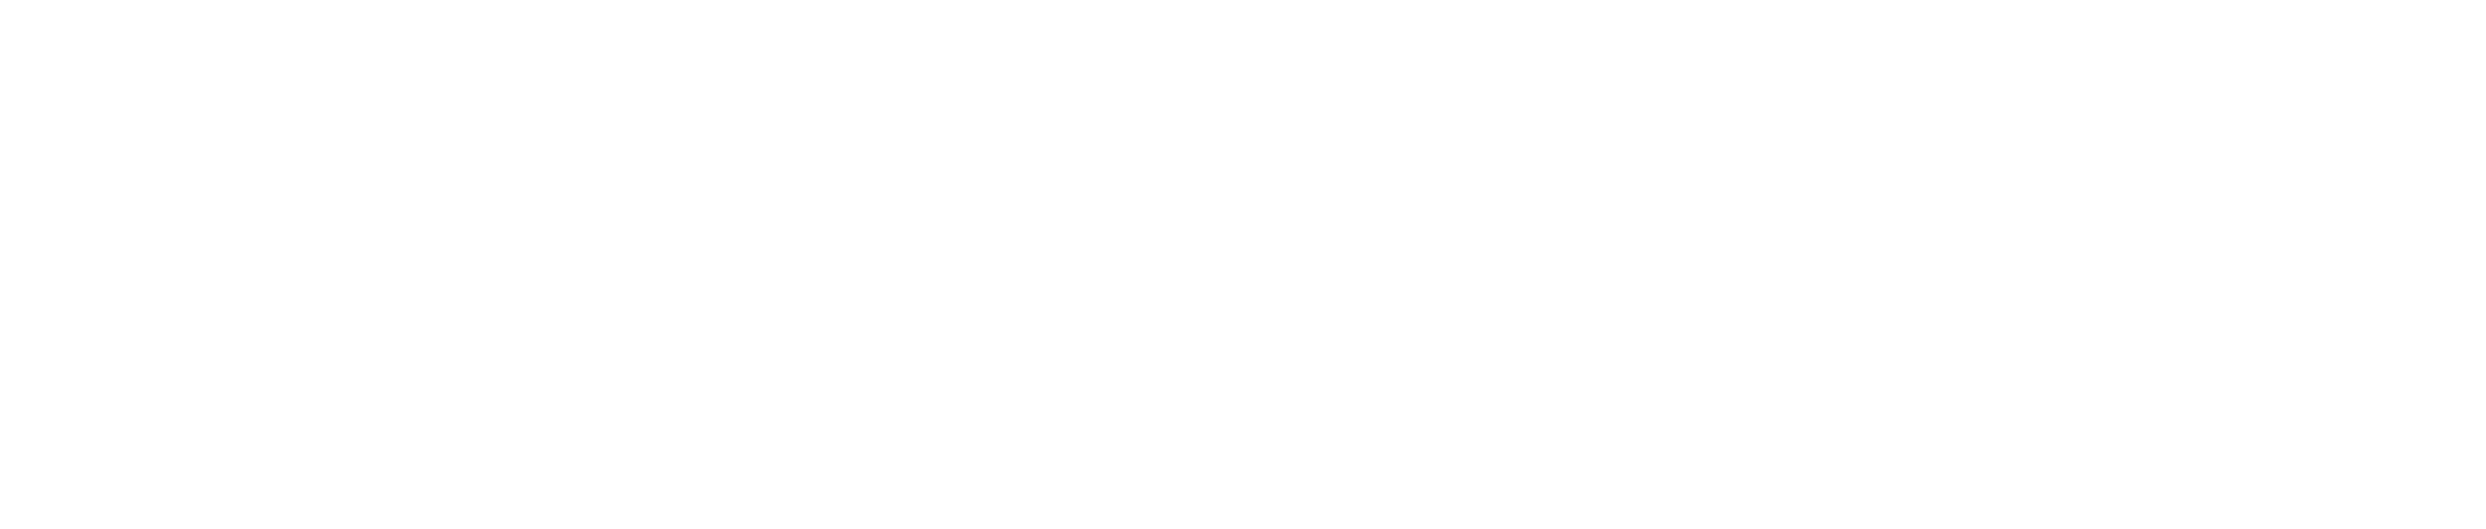 F.H. Perry Builder